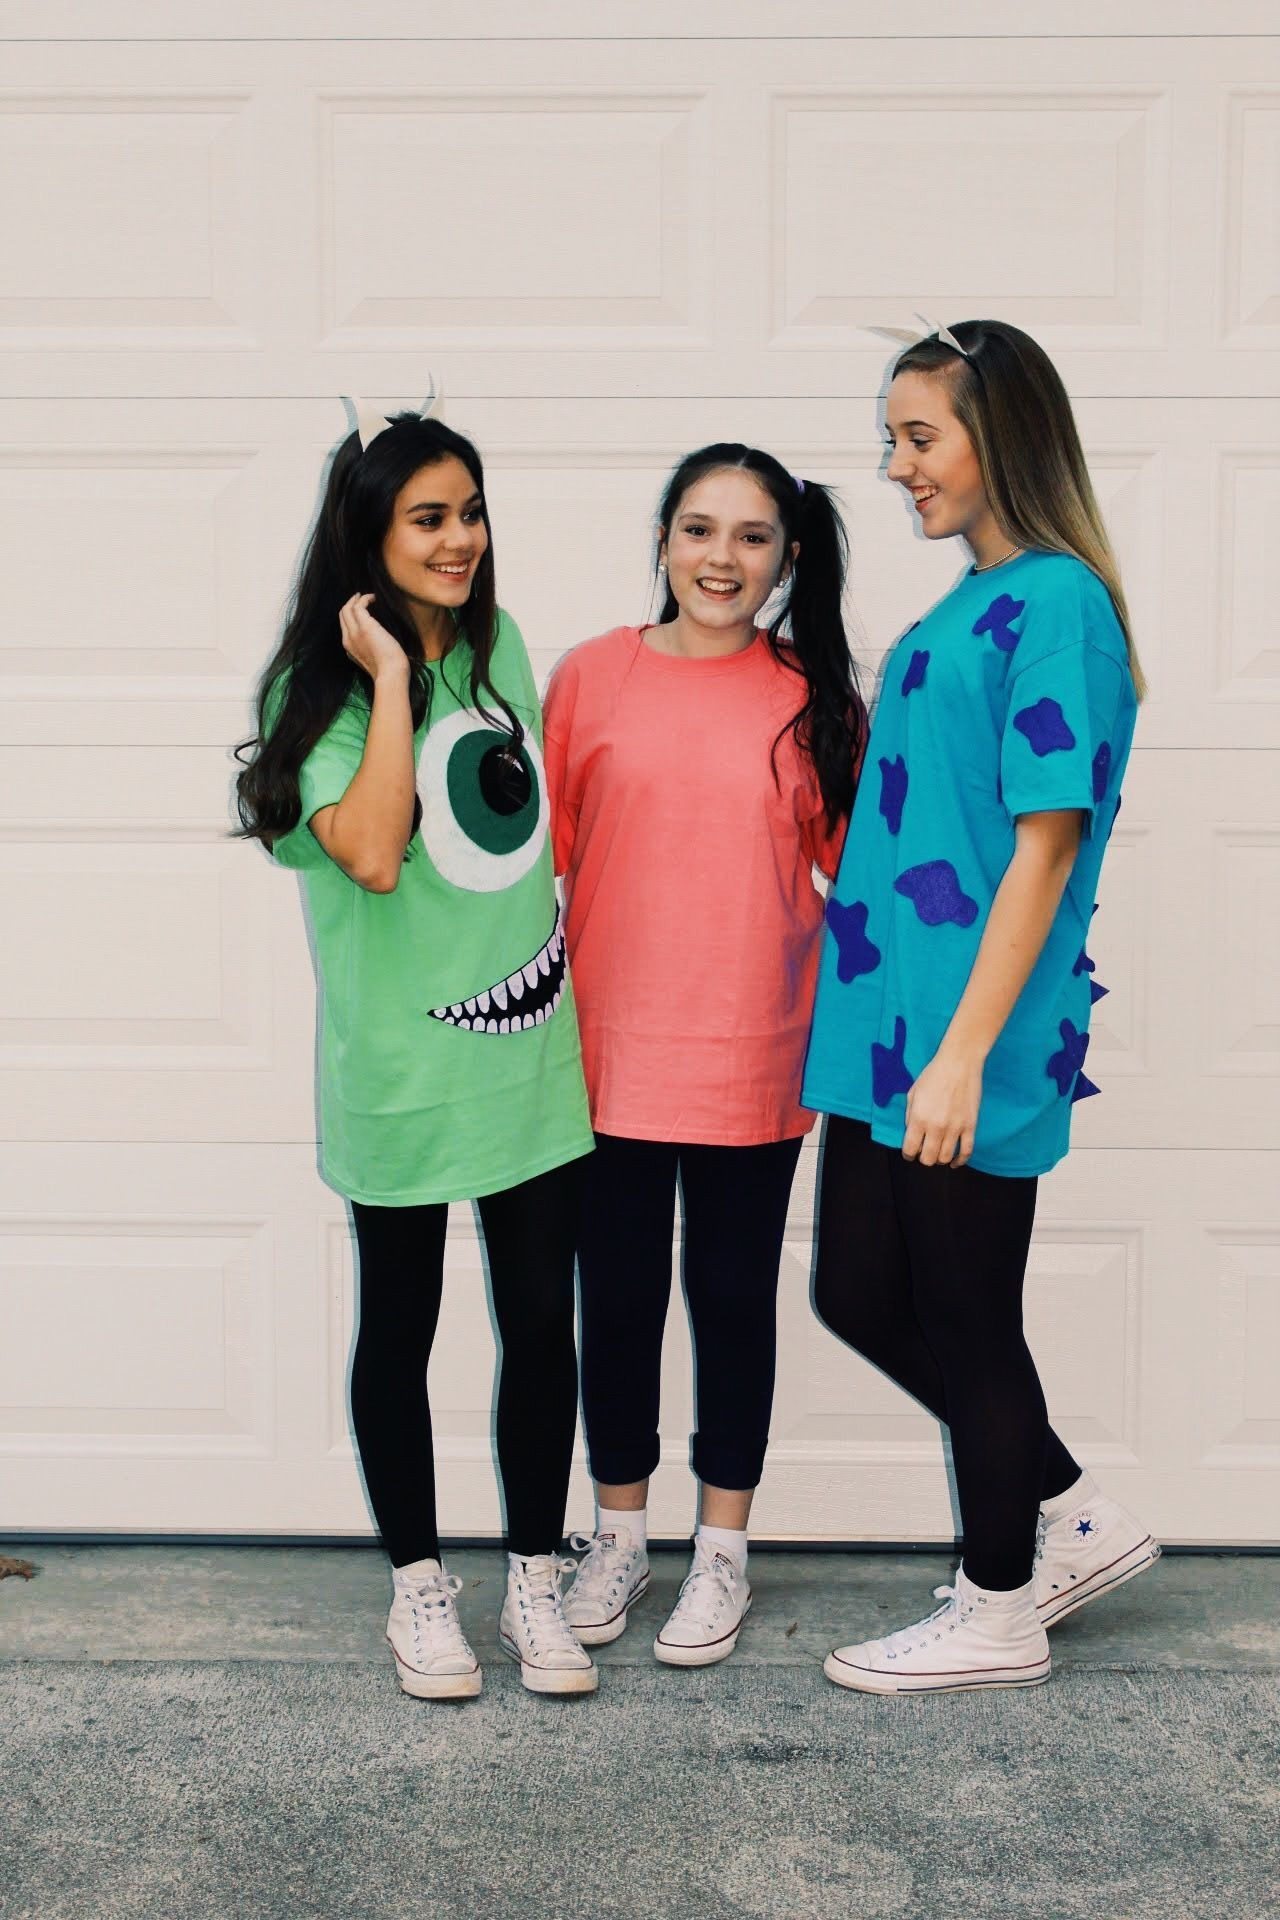 3 Person Costume Ideas : person, costume, ideas, Nancy, Halloween, Outfits, Ideas, Costumes,, Group, Person, Costumes